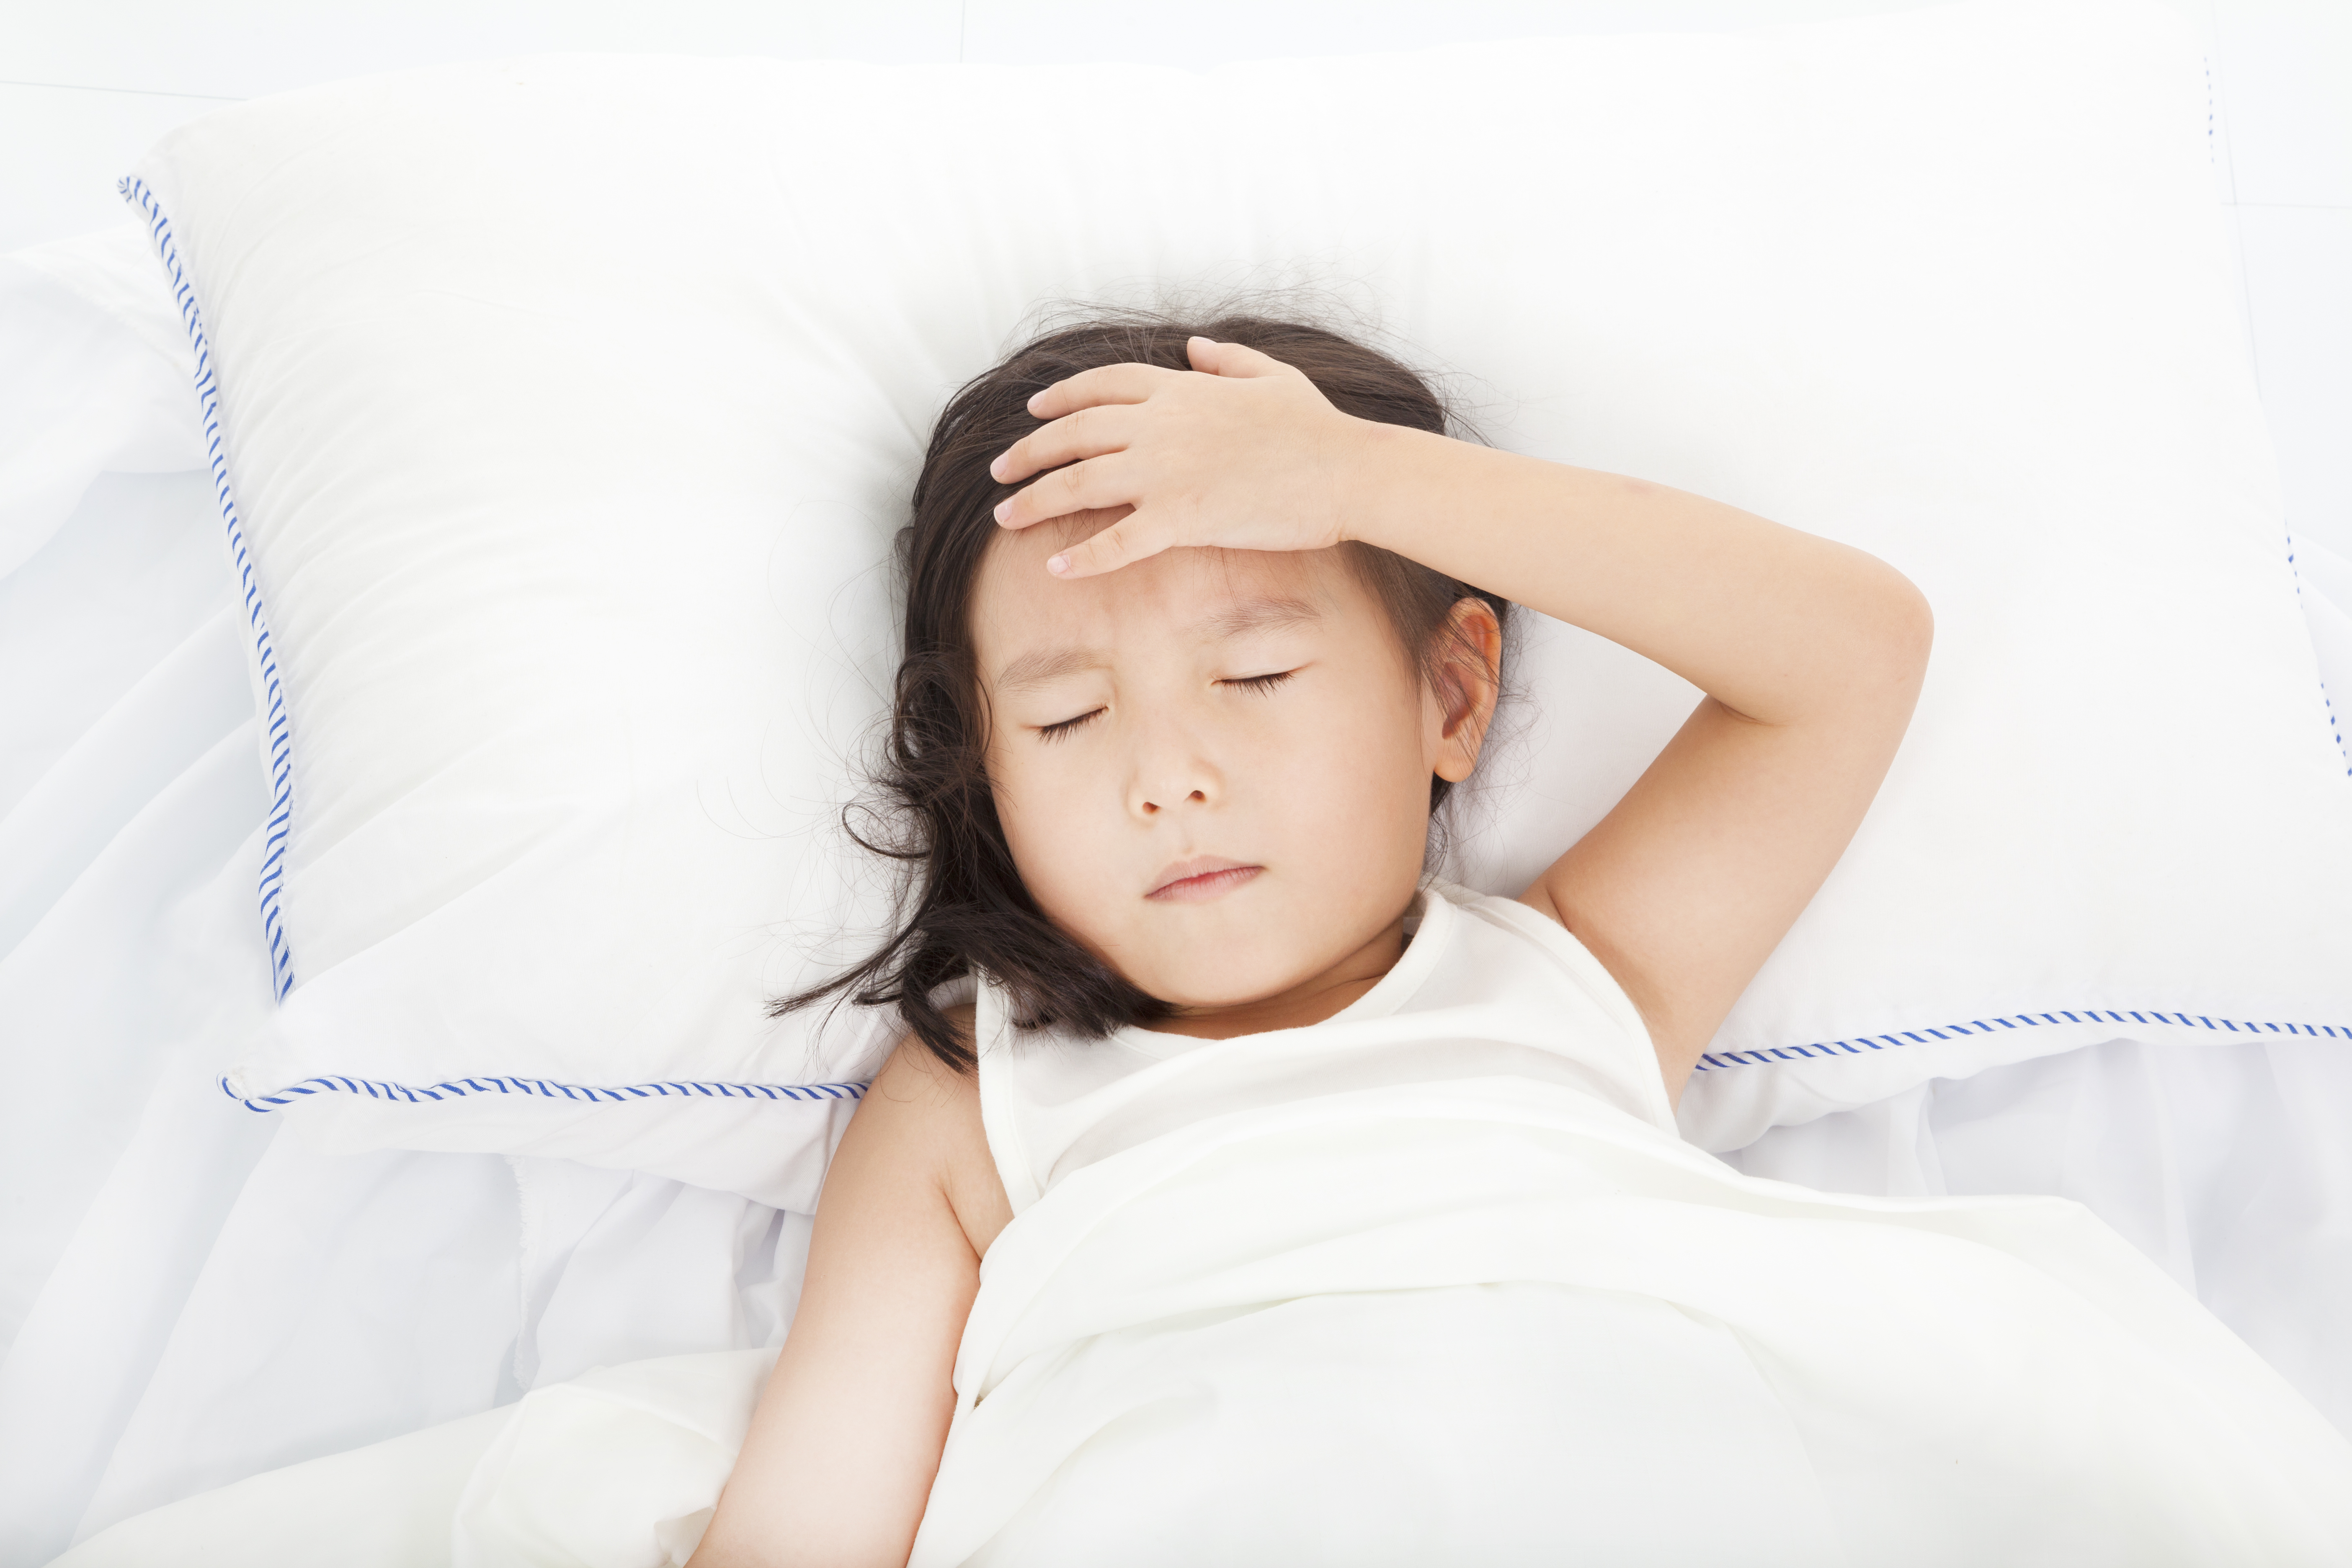 Often ill children. What to do and who is to blame